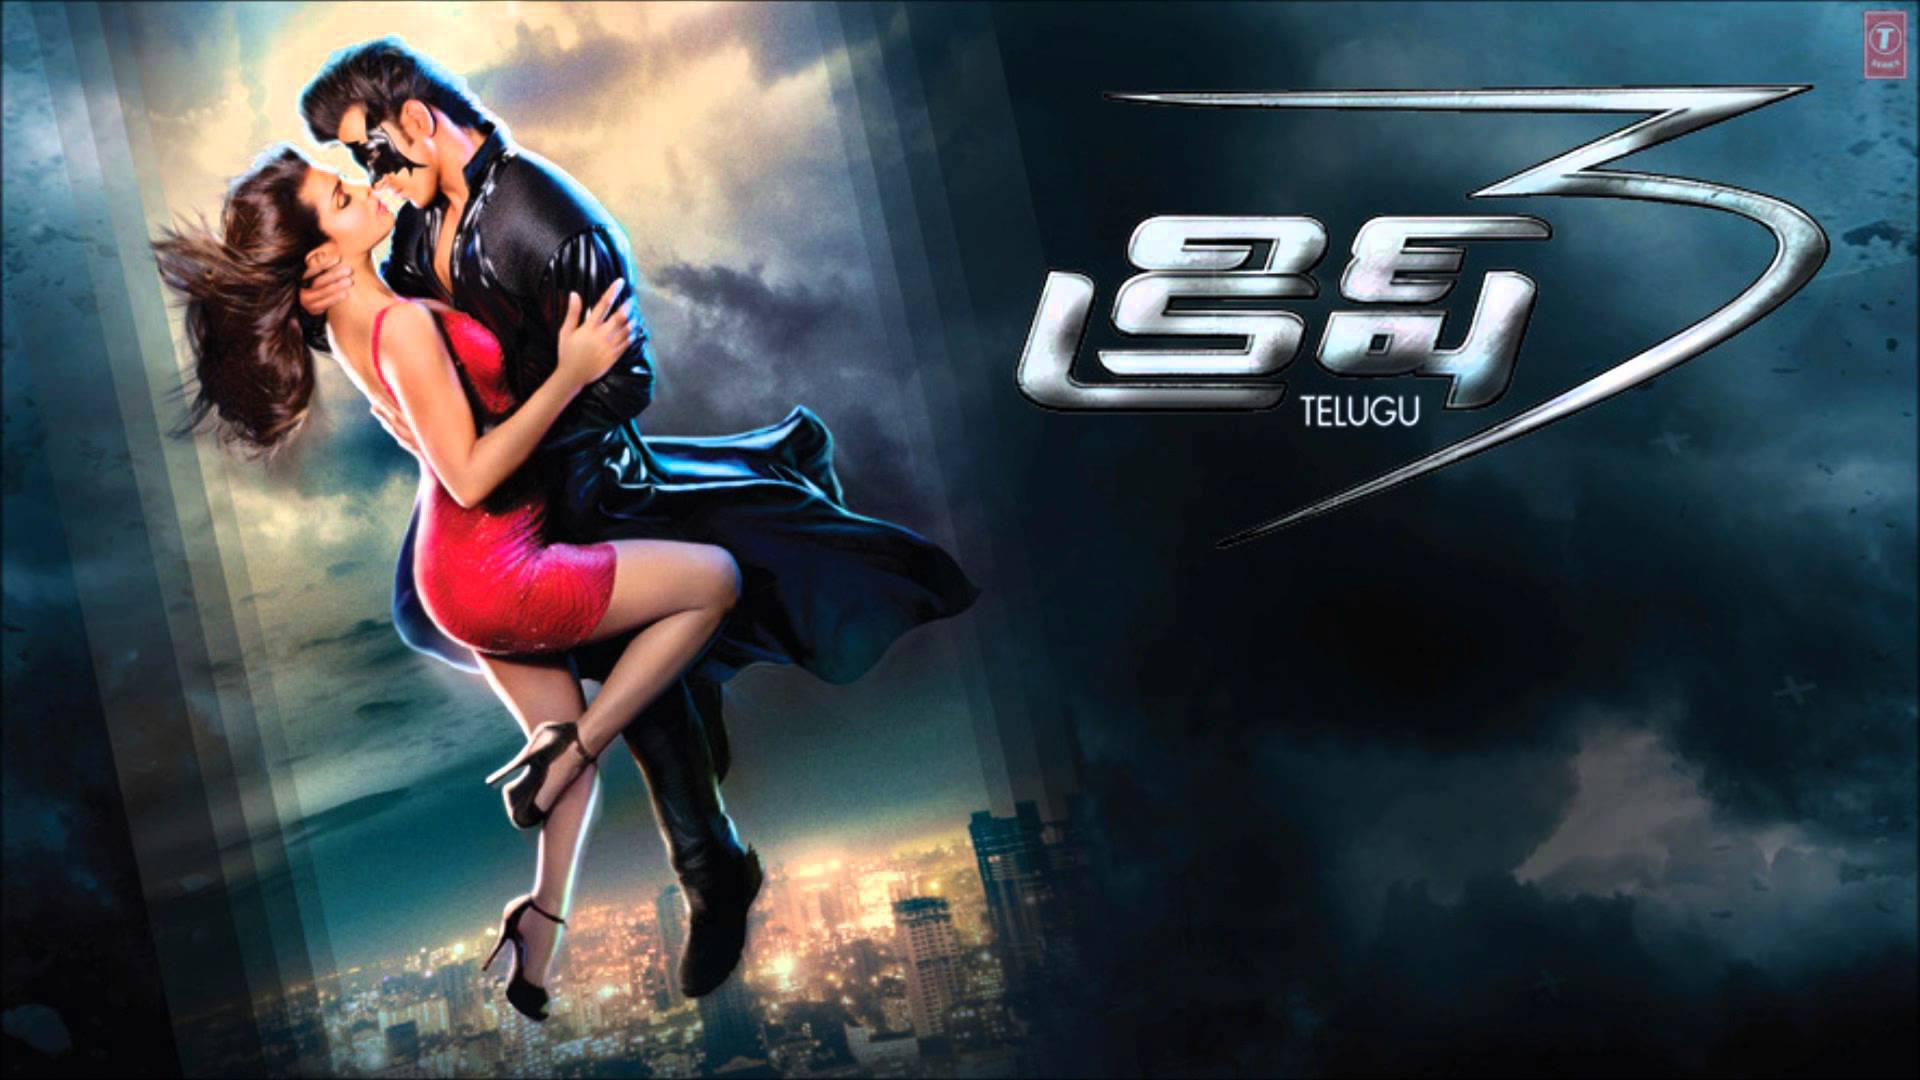 Krrish 3 Hd Wallpapers Group